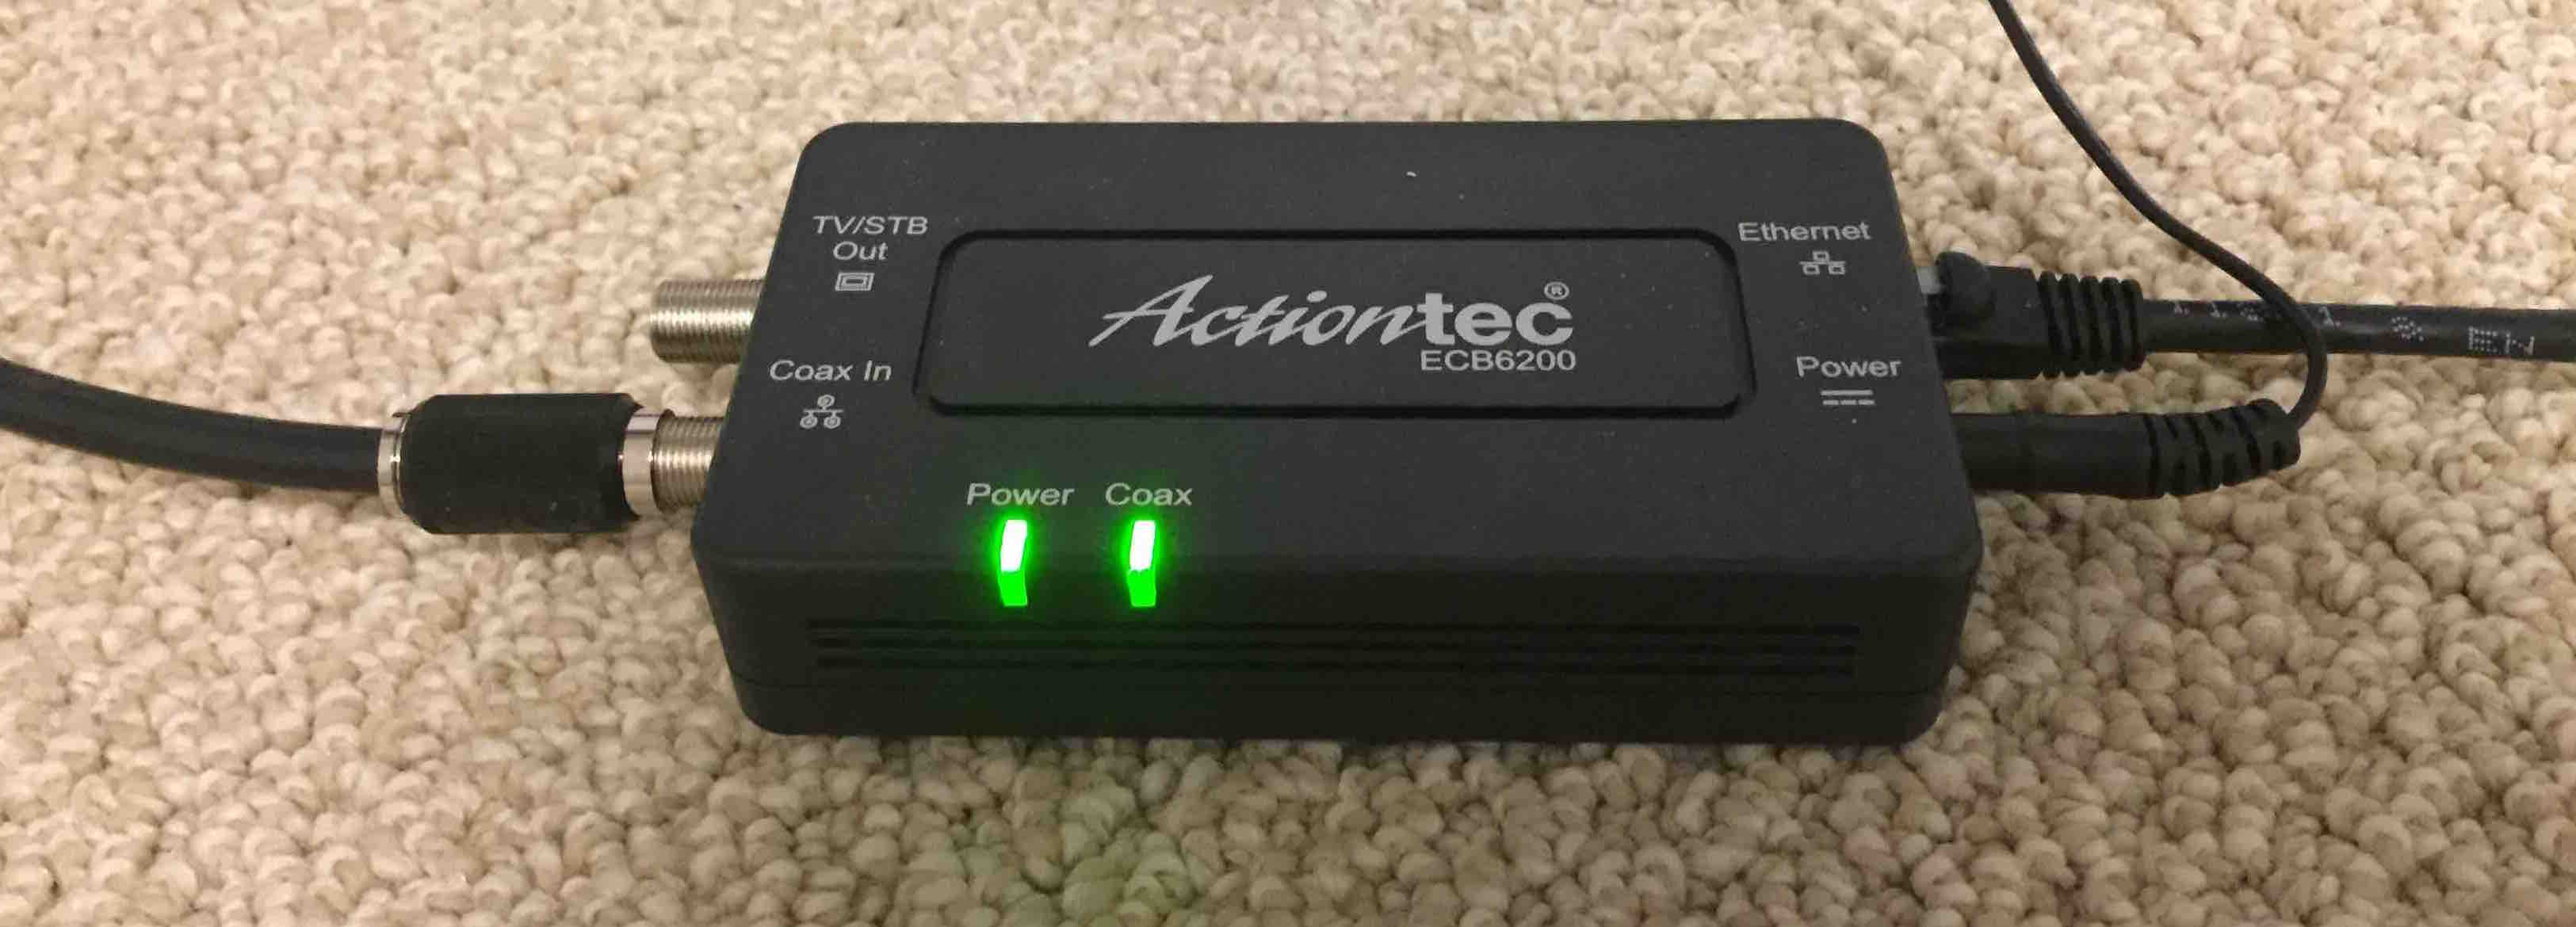 List Of Synonyms And Antonyms The Word Moca Adapters Tivo Wiring Diagram Actiontec 20 Ethernet To Coax Network Adapter 2 Pack